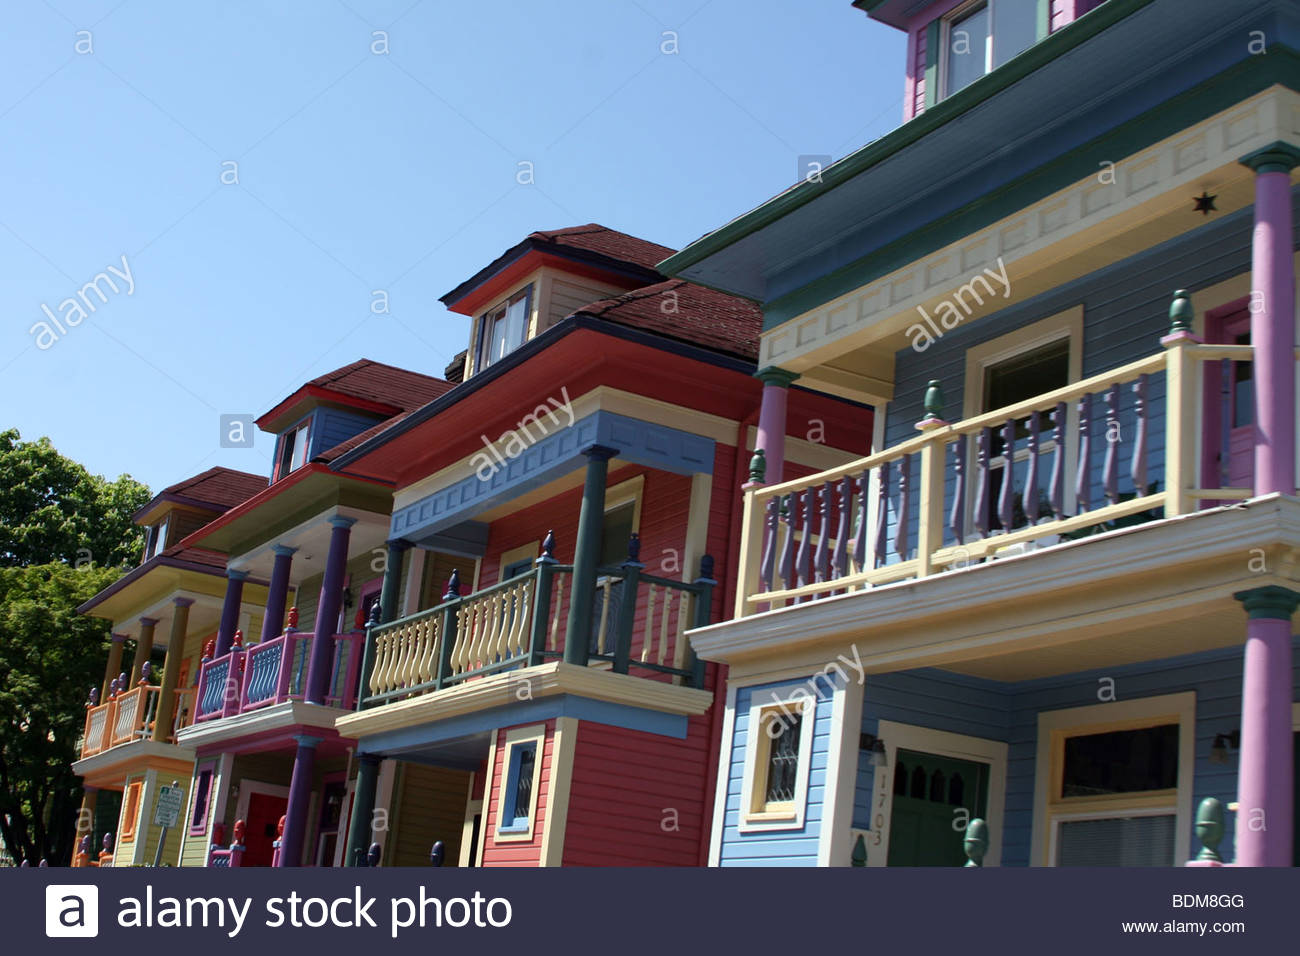 homes, Portland, colorful, colors, cool - Stock Image